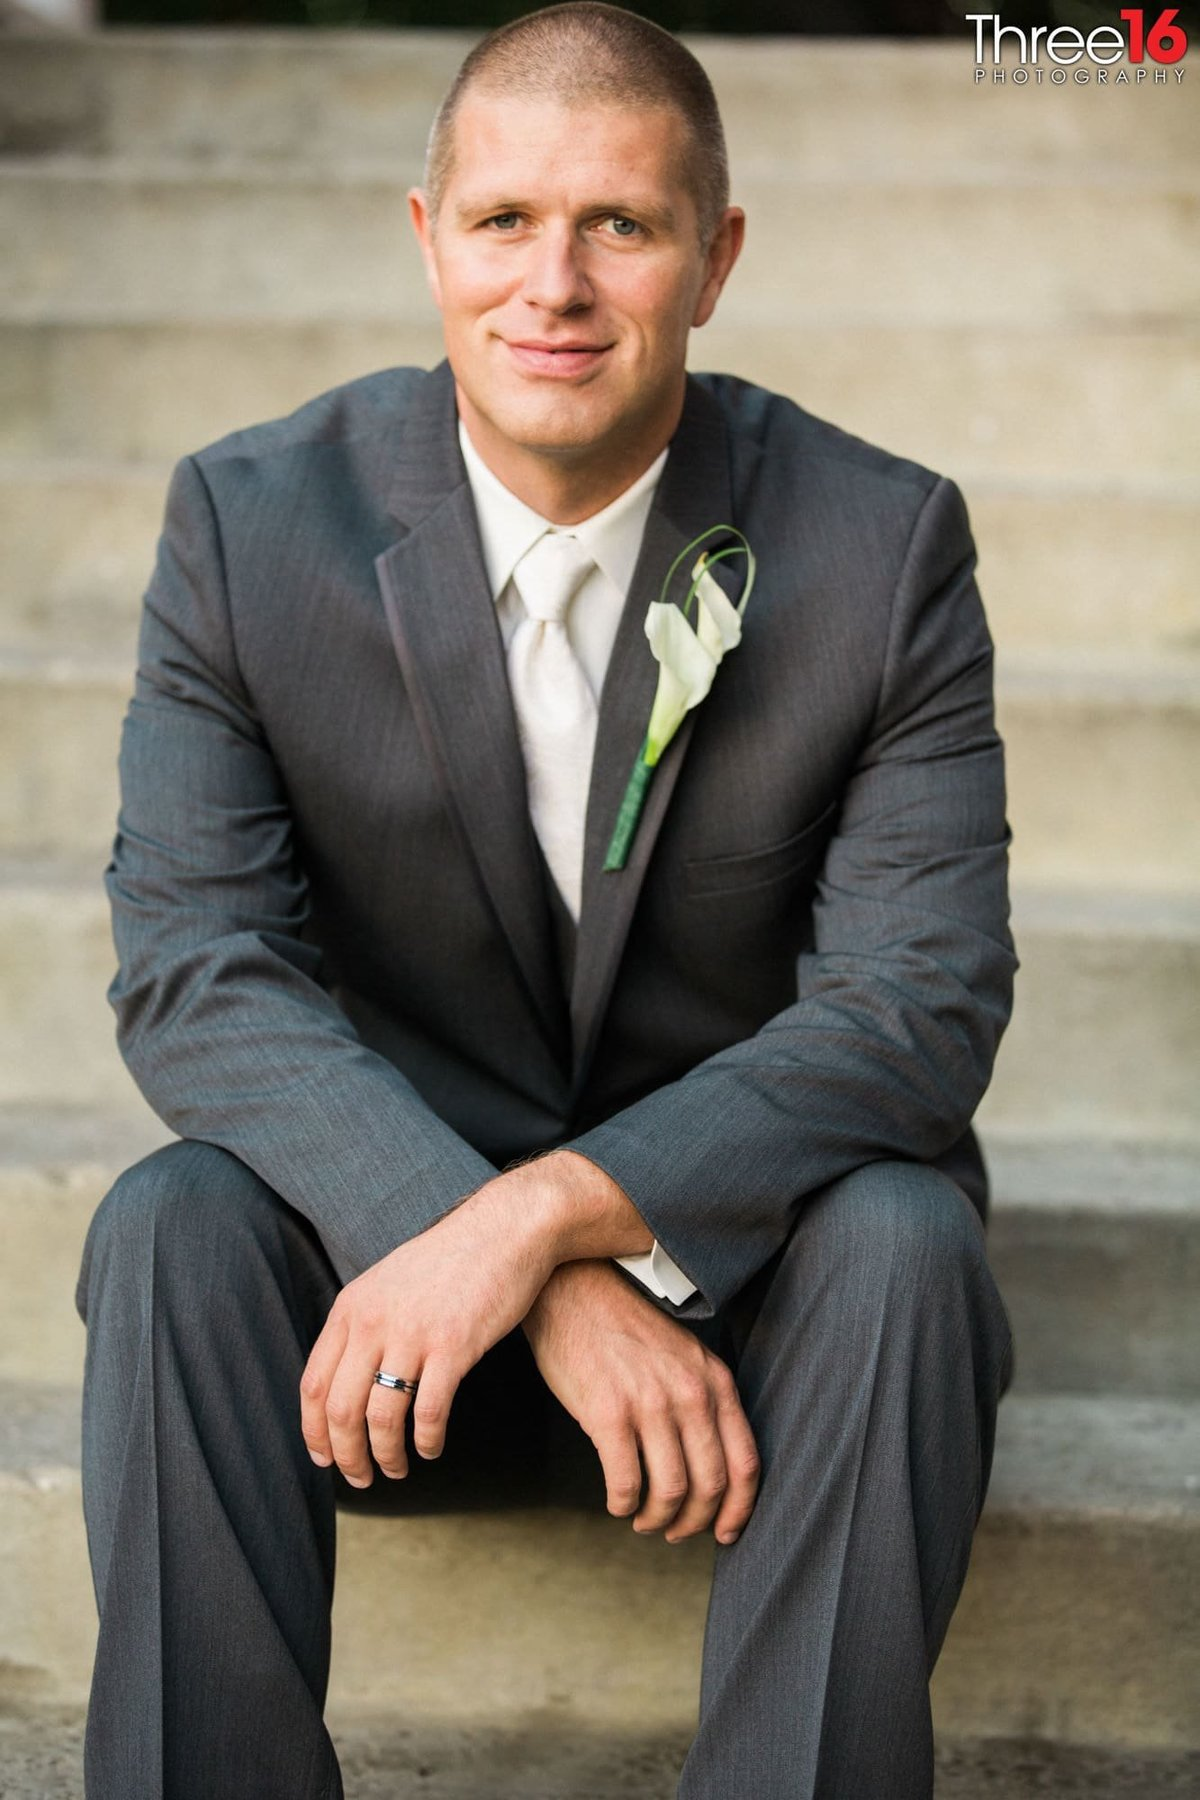 Groom sitting as he poses for the photographer